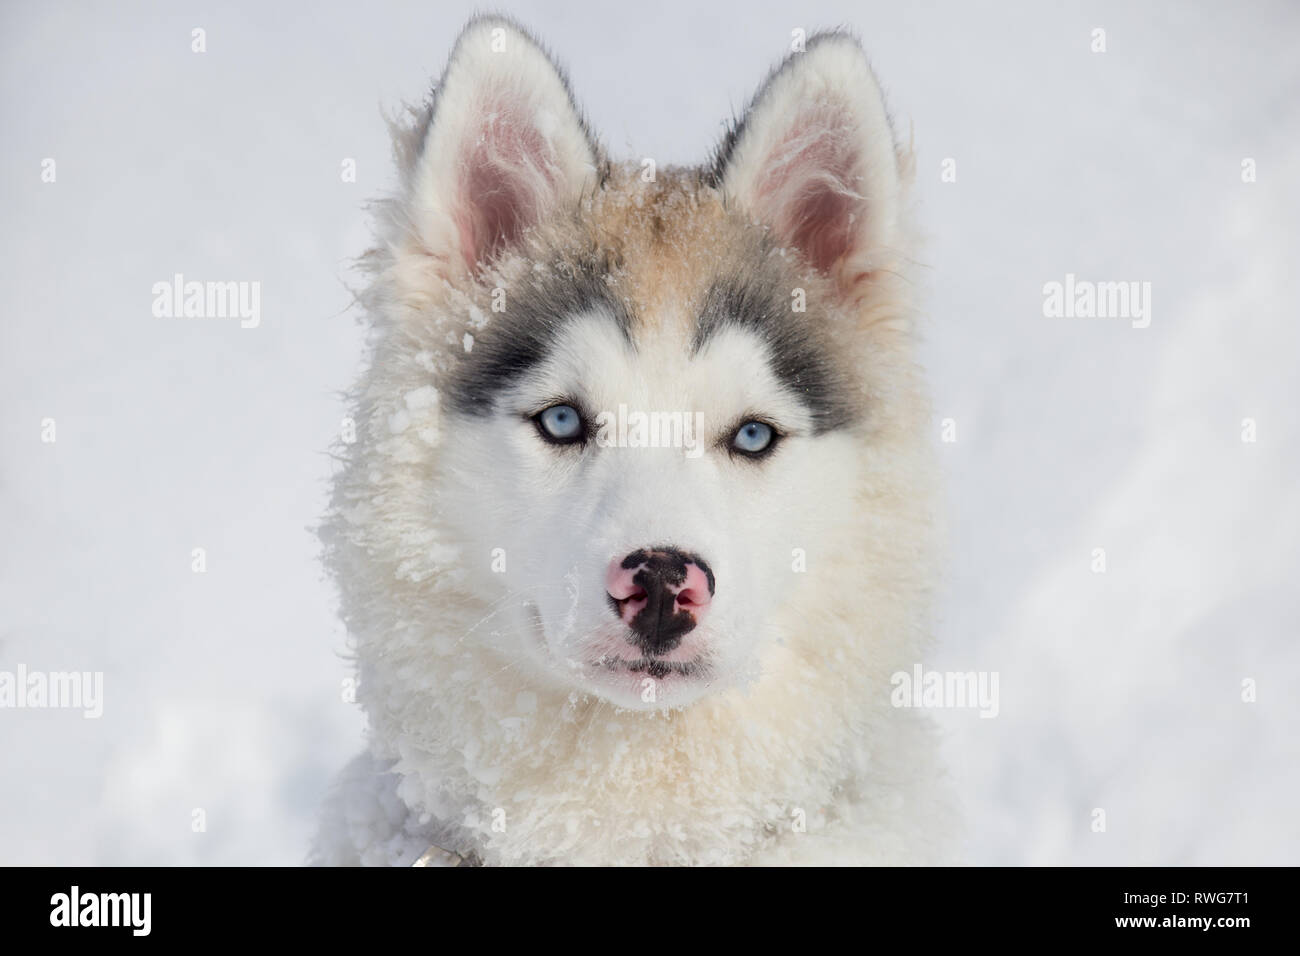 Cute Siberian Husky Puppy With Blue Eyes Two Month Old Pet Animals Purebred Dog Stock Photo Alamy